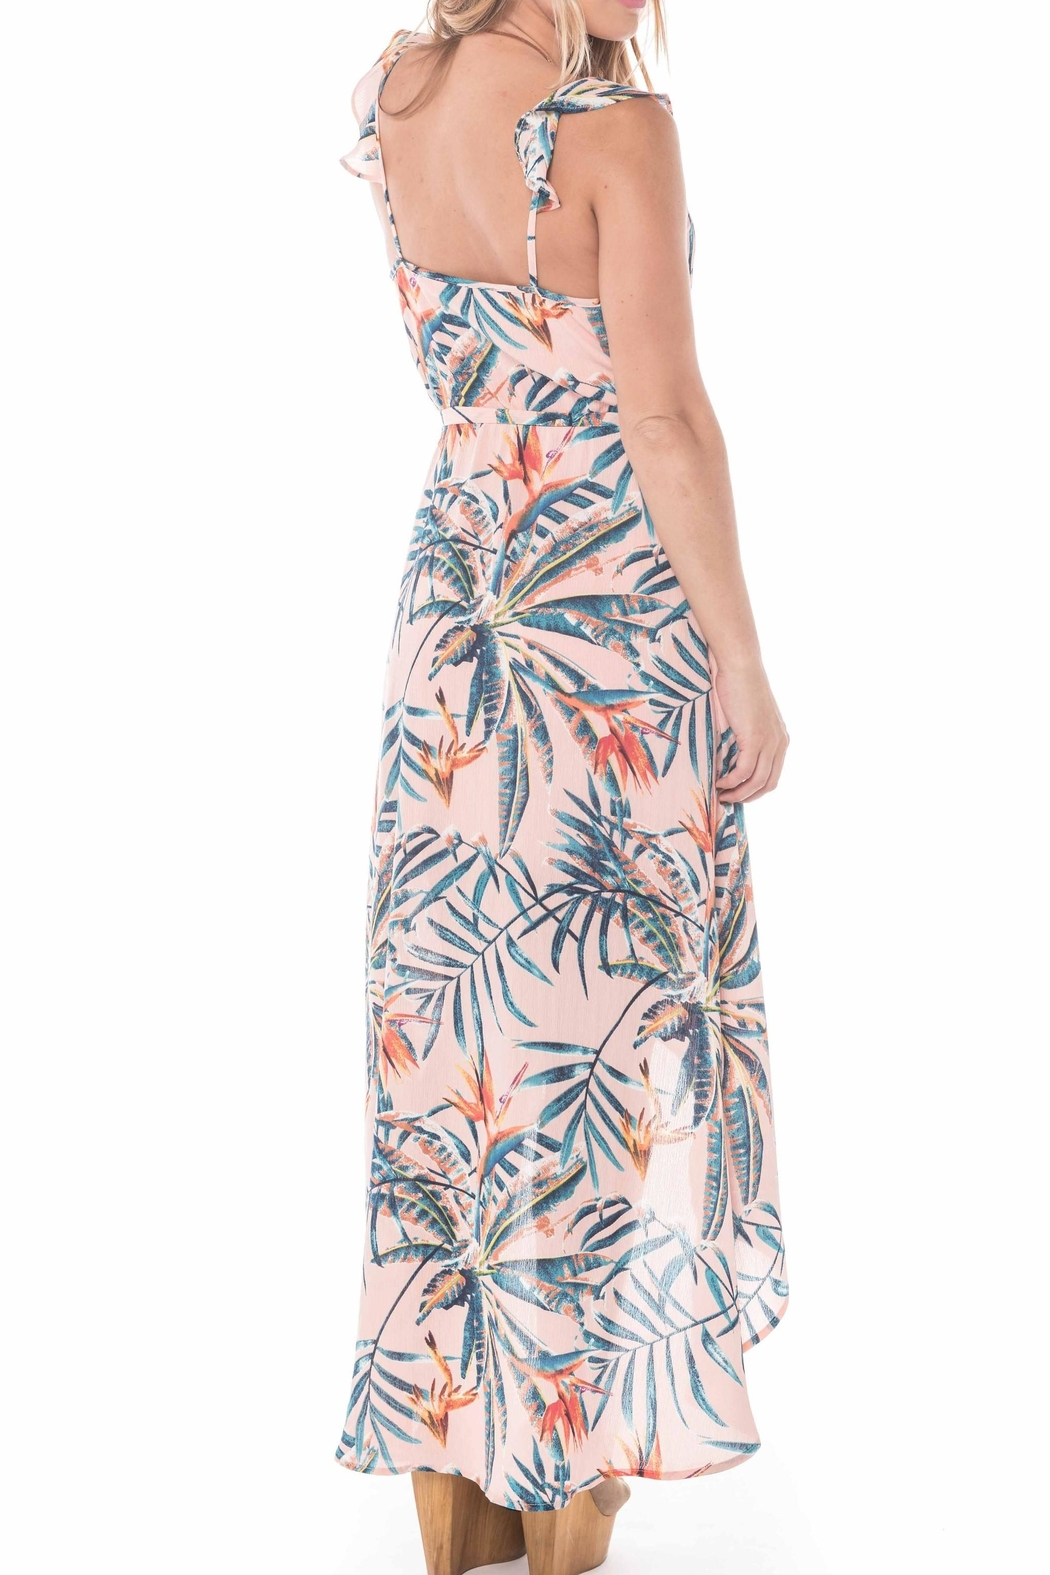 Buddy Love Costa Rica Dress - Side Cropped Image